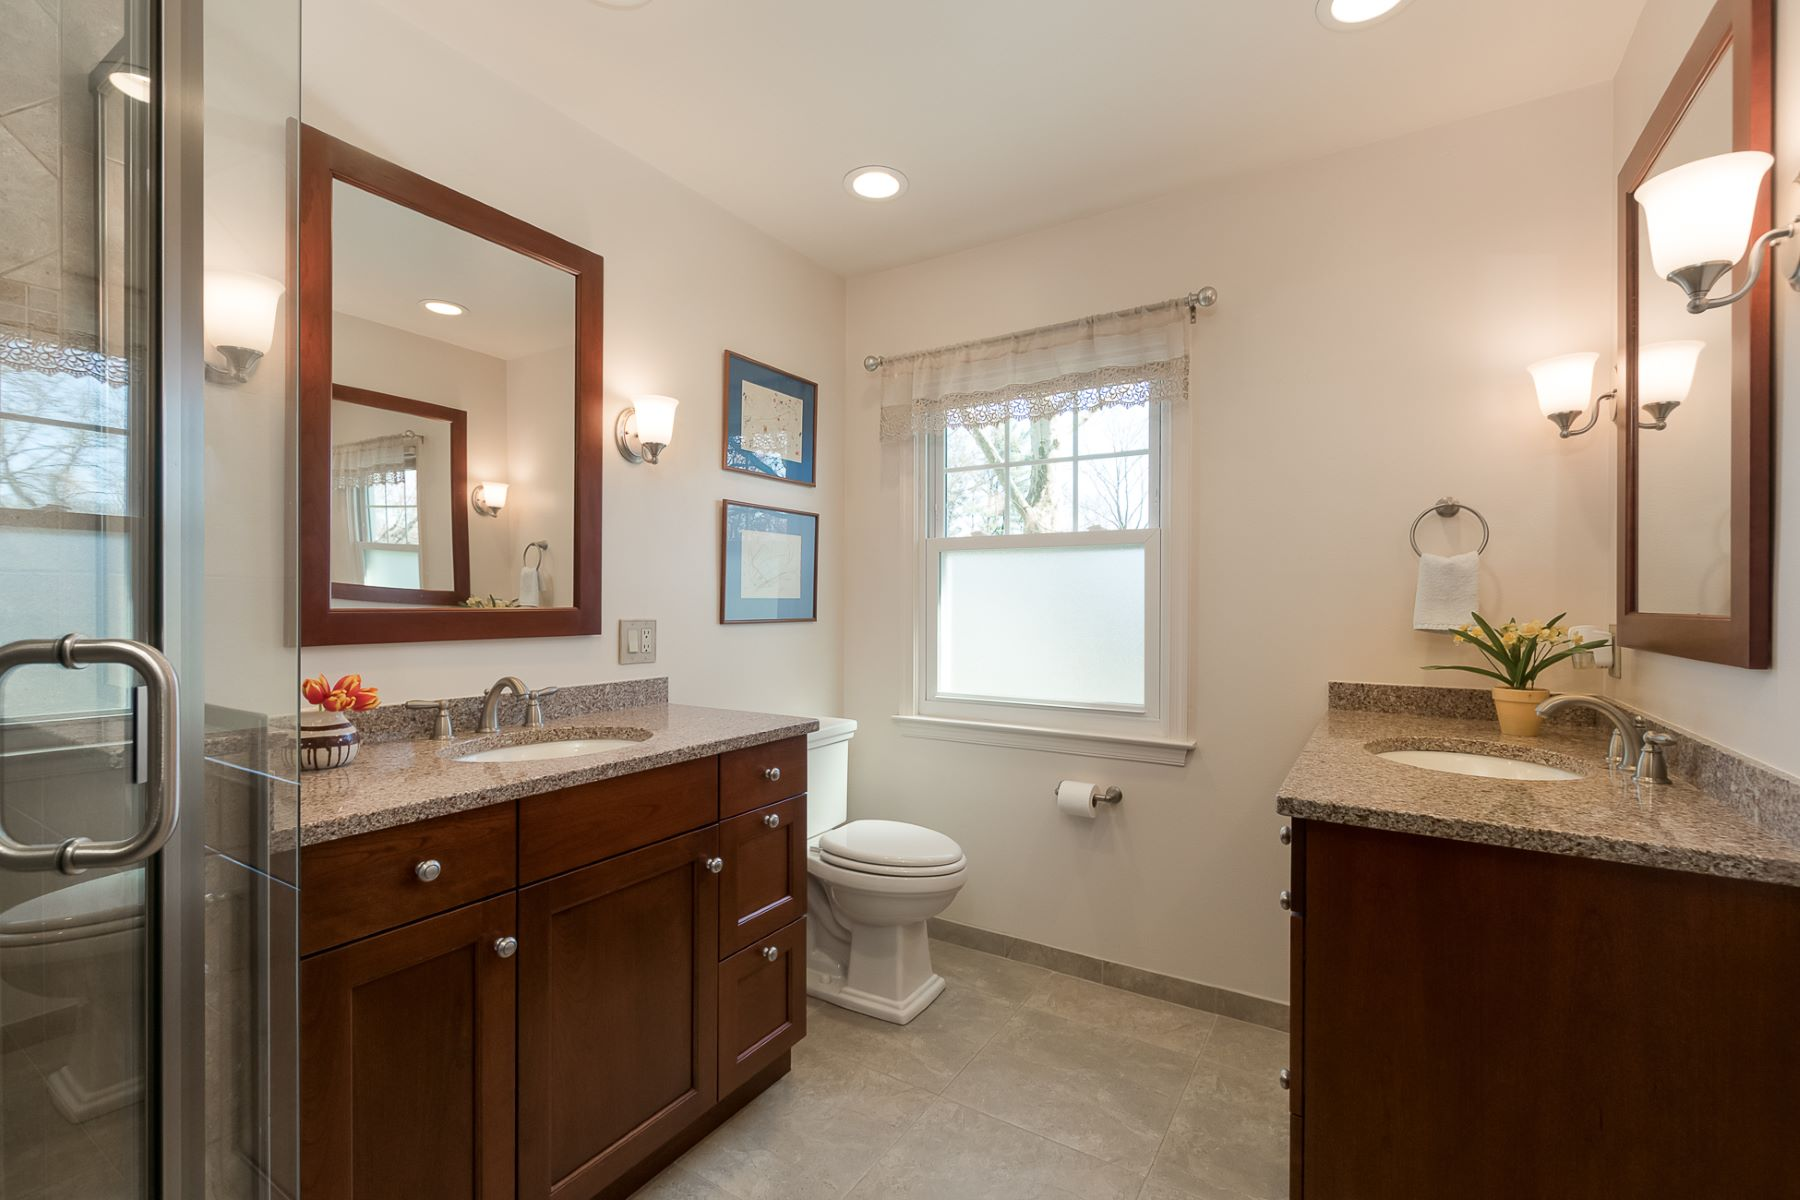 Additional photo for property listing at Renovations Shine in Lawrenceville 4-Bedroom 8 Woodlane Road, Lawrenceville, New Jersey 08648 Stati Uniti